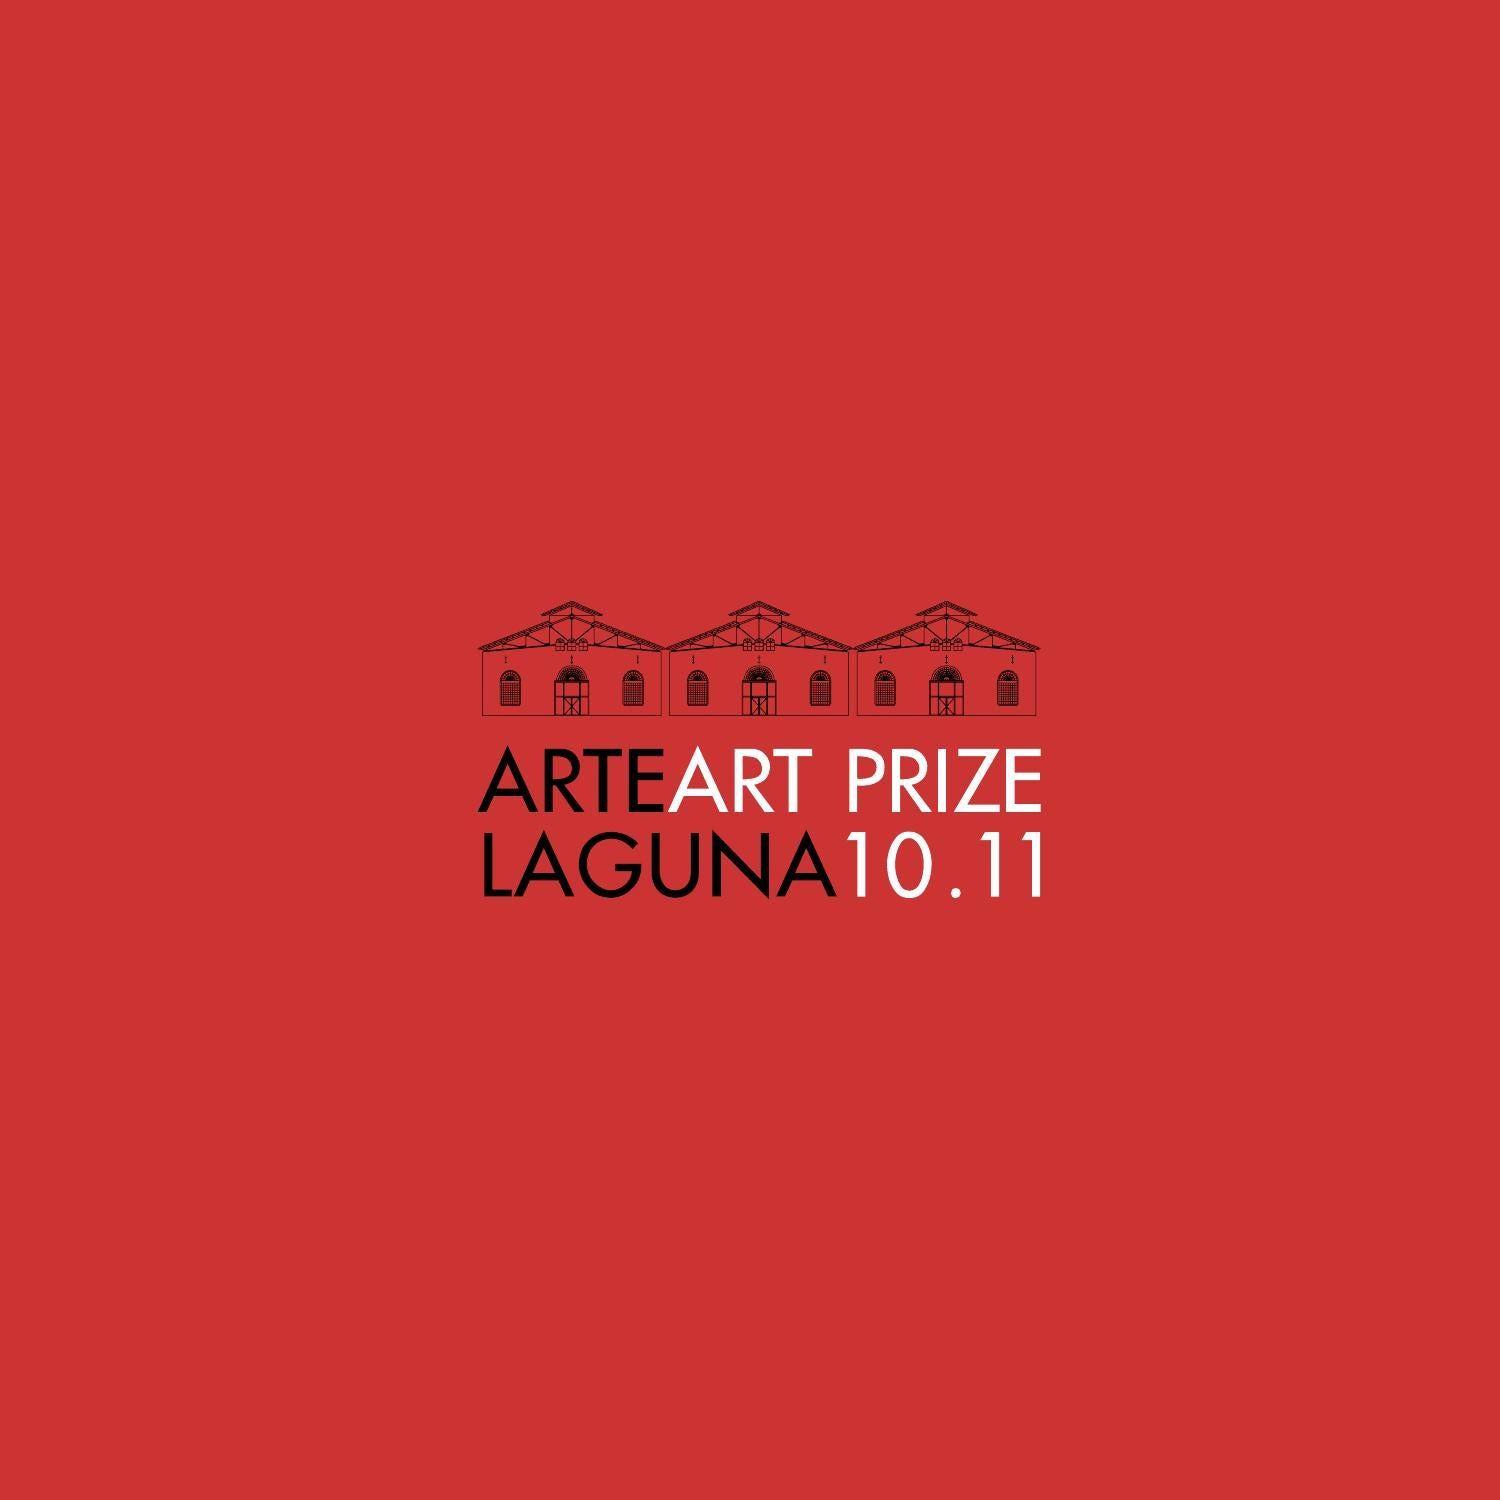 Fila Ps 87 Forum arte laguna prize 5th edition by arte laguna prize - issuu